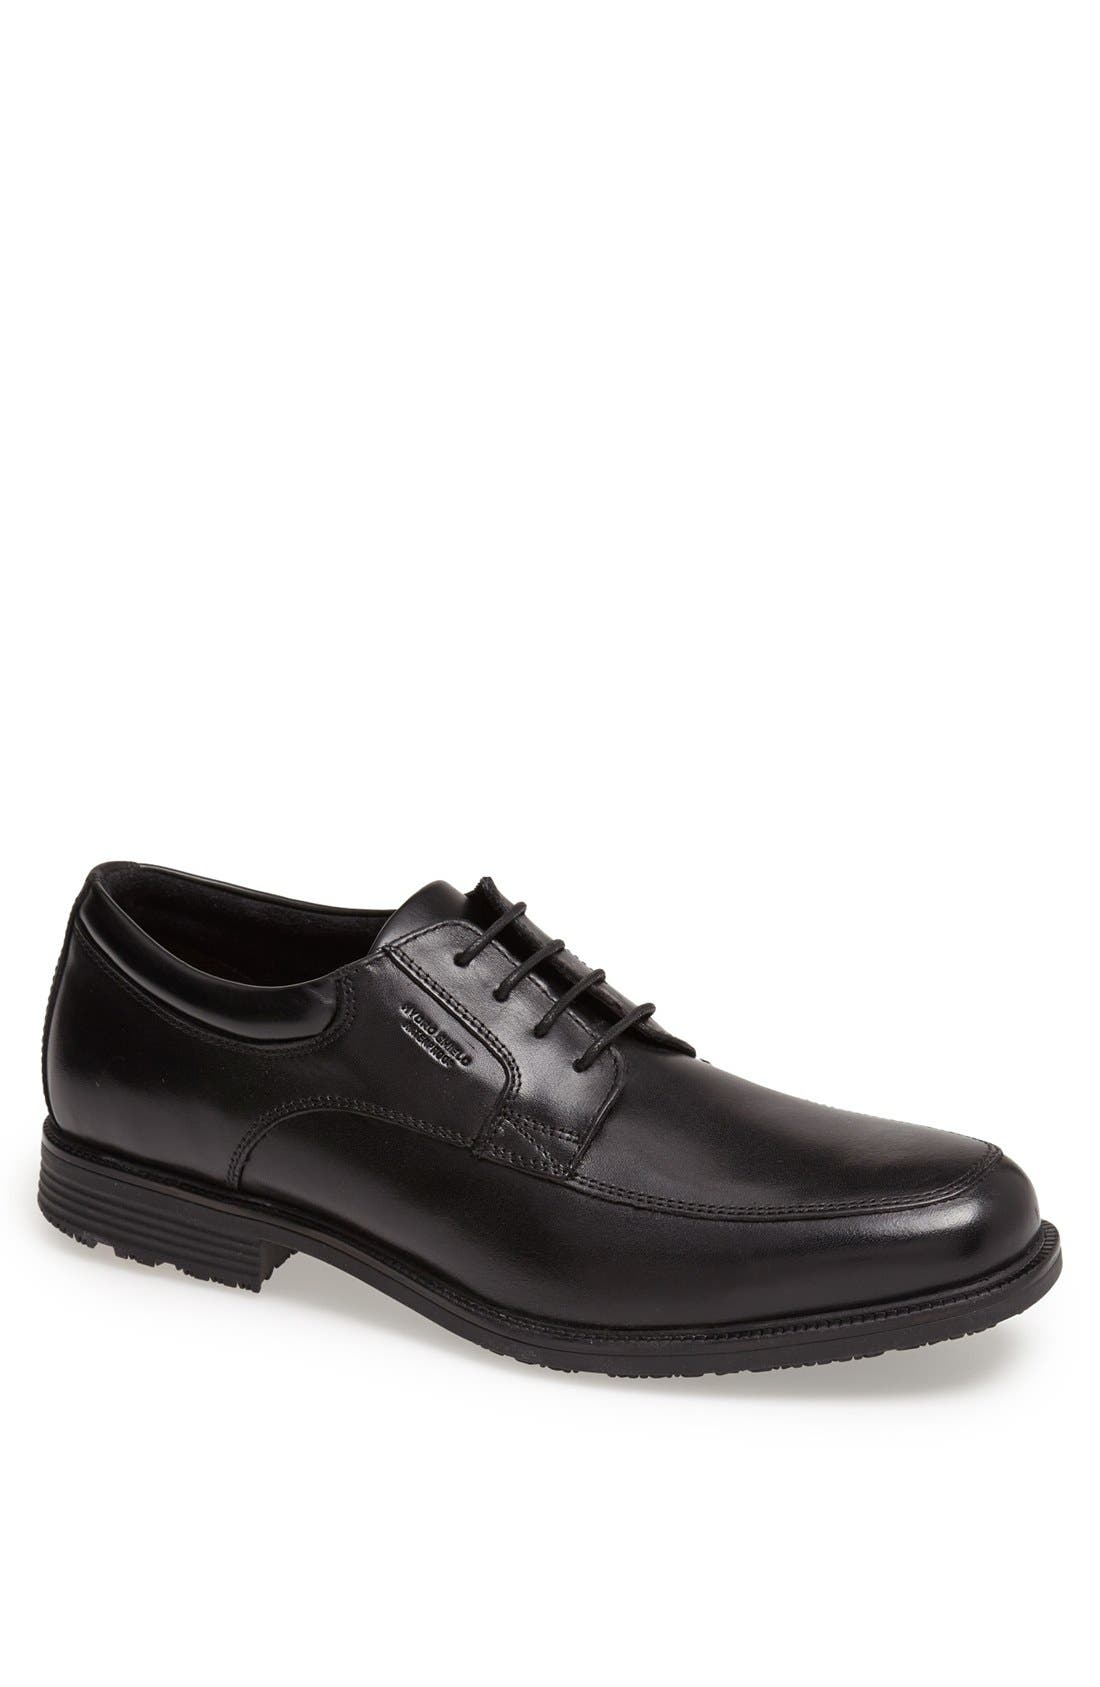 Rockport 'Essential Details' Waterproof Derby